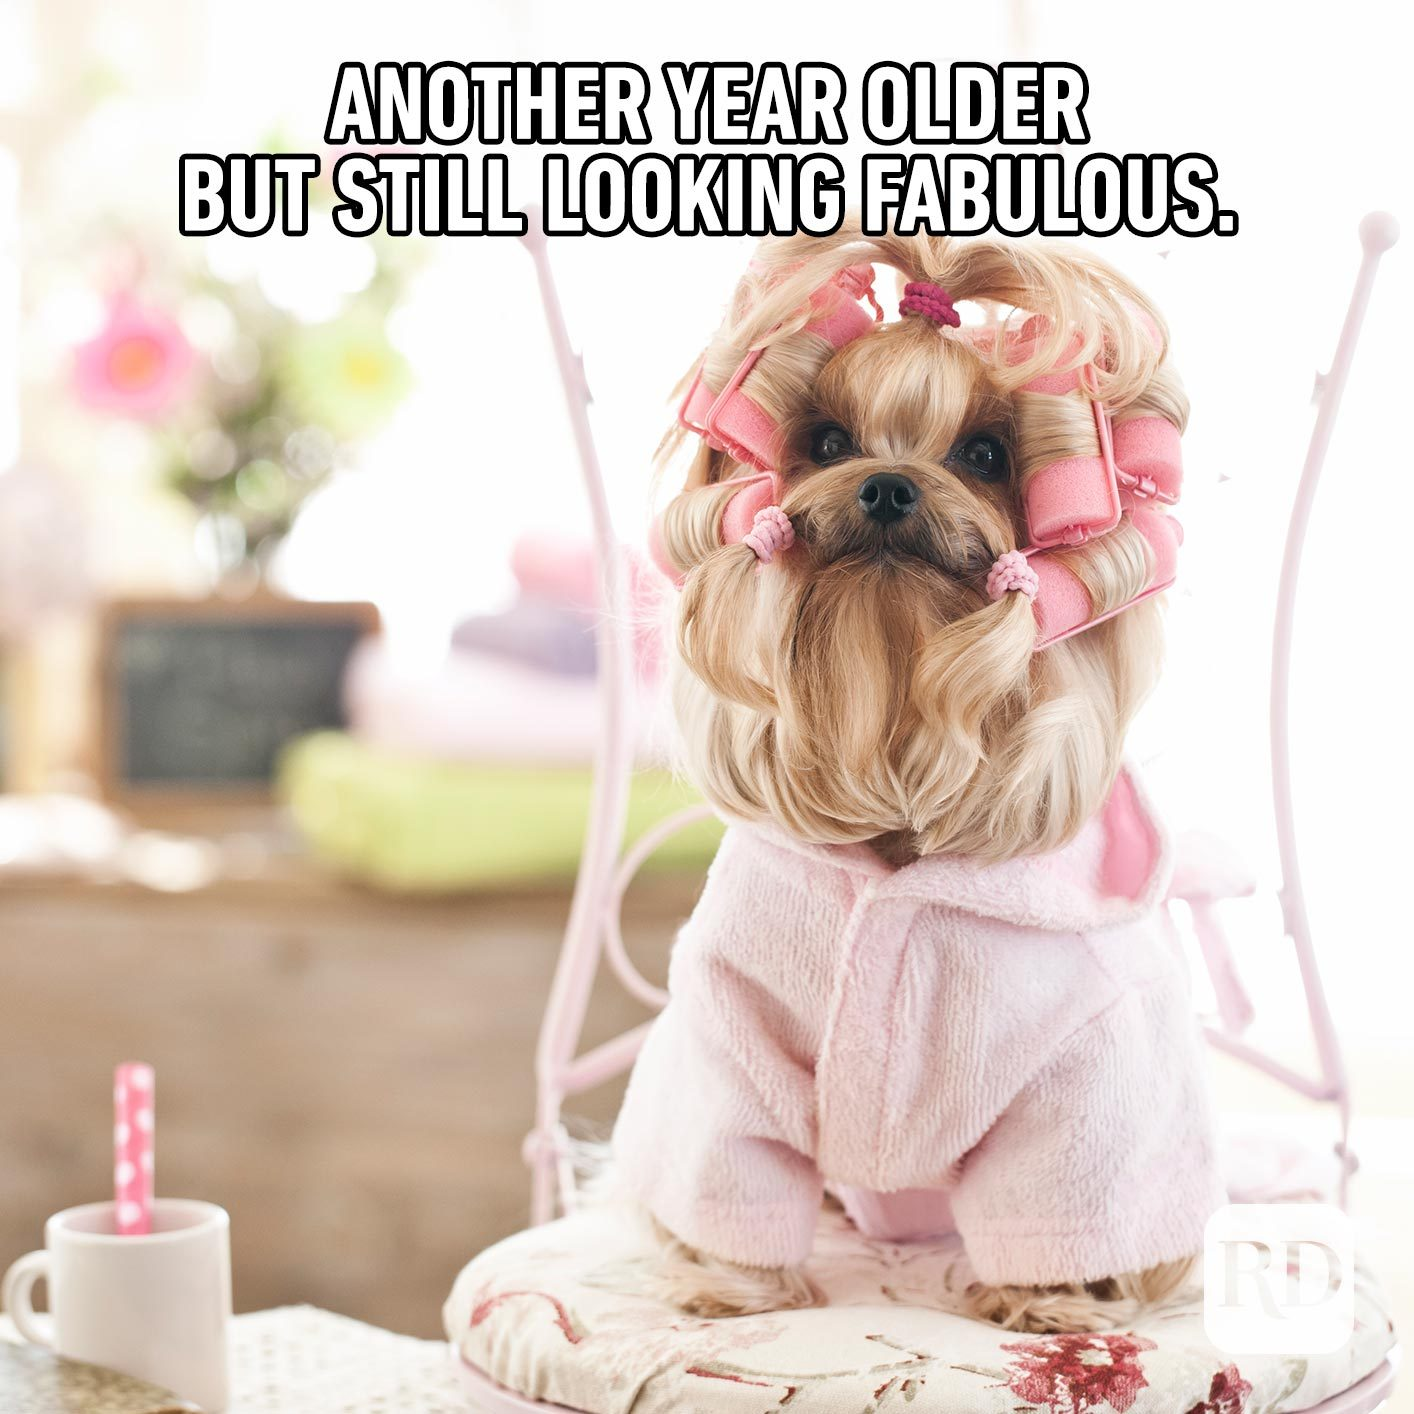 Another year older, but still looking fabulous.